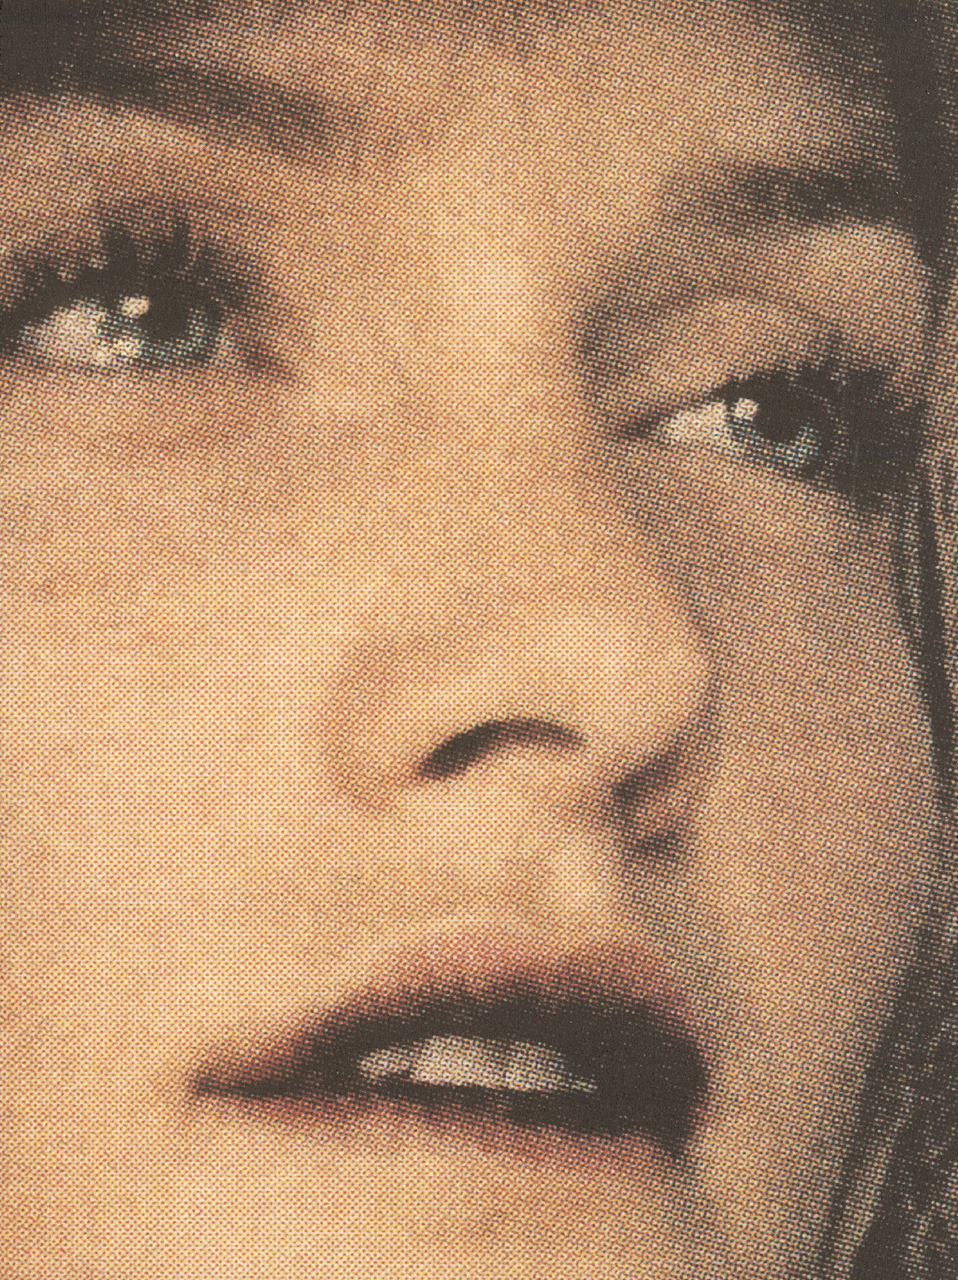 A Closer Look: Amber Valletta (2000)photography craig mcdean Yohji Yamamoto «Rewind/Forward», 238 Fashion Pictures, 1995–2000